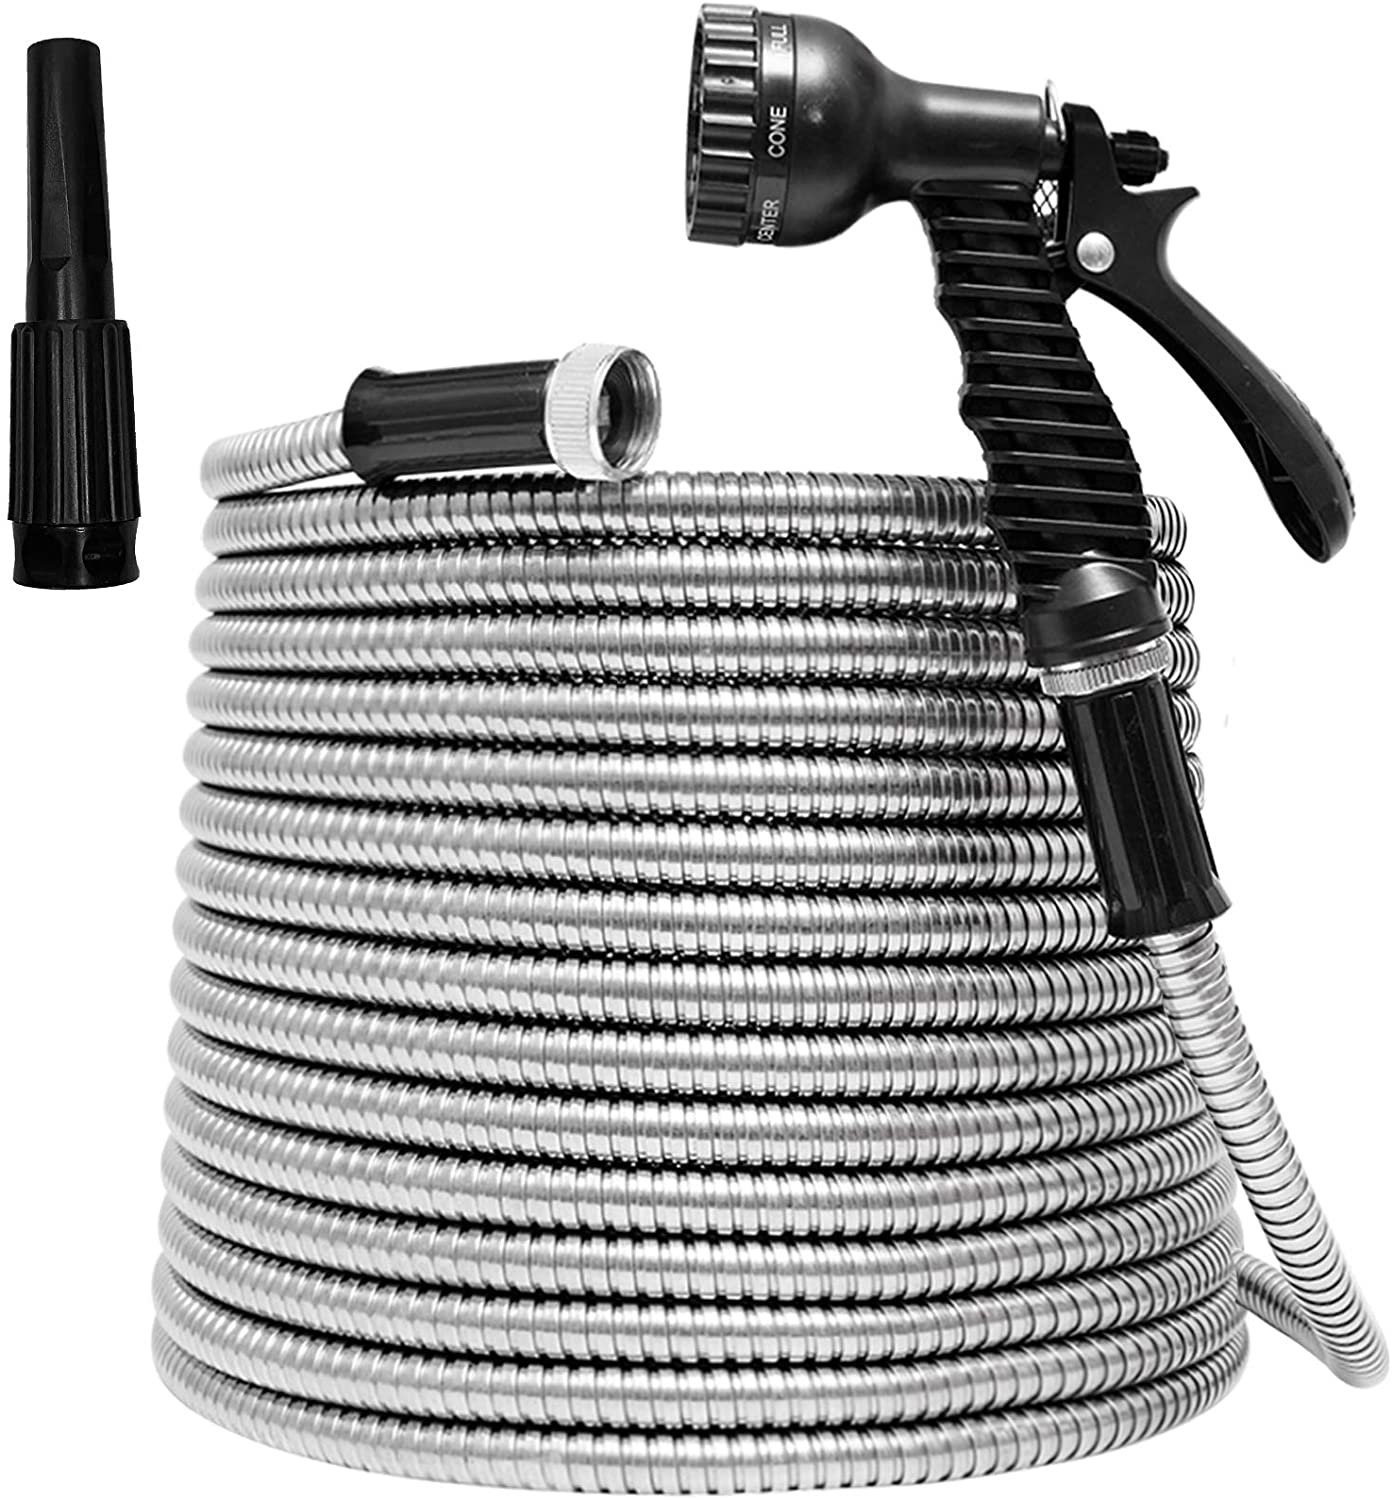 TUNHUI 100FT Heavy Duty Flexible Metal Garden Hose Stainless Steel Water Hose with 2 Free Nozzles Metal Hose Flexible Durable Kink Free and Easy to Store Outdoor Hose